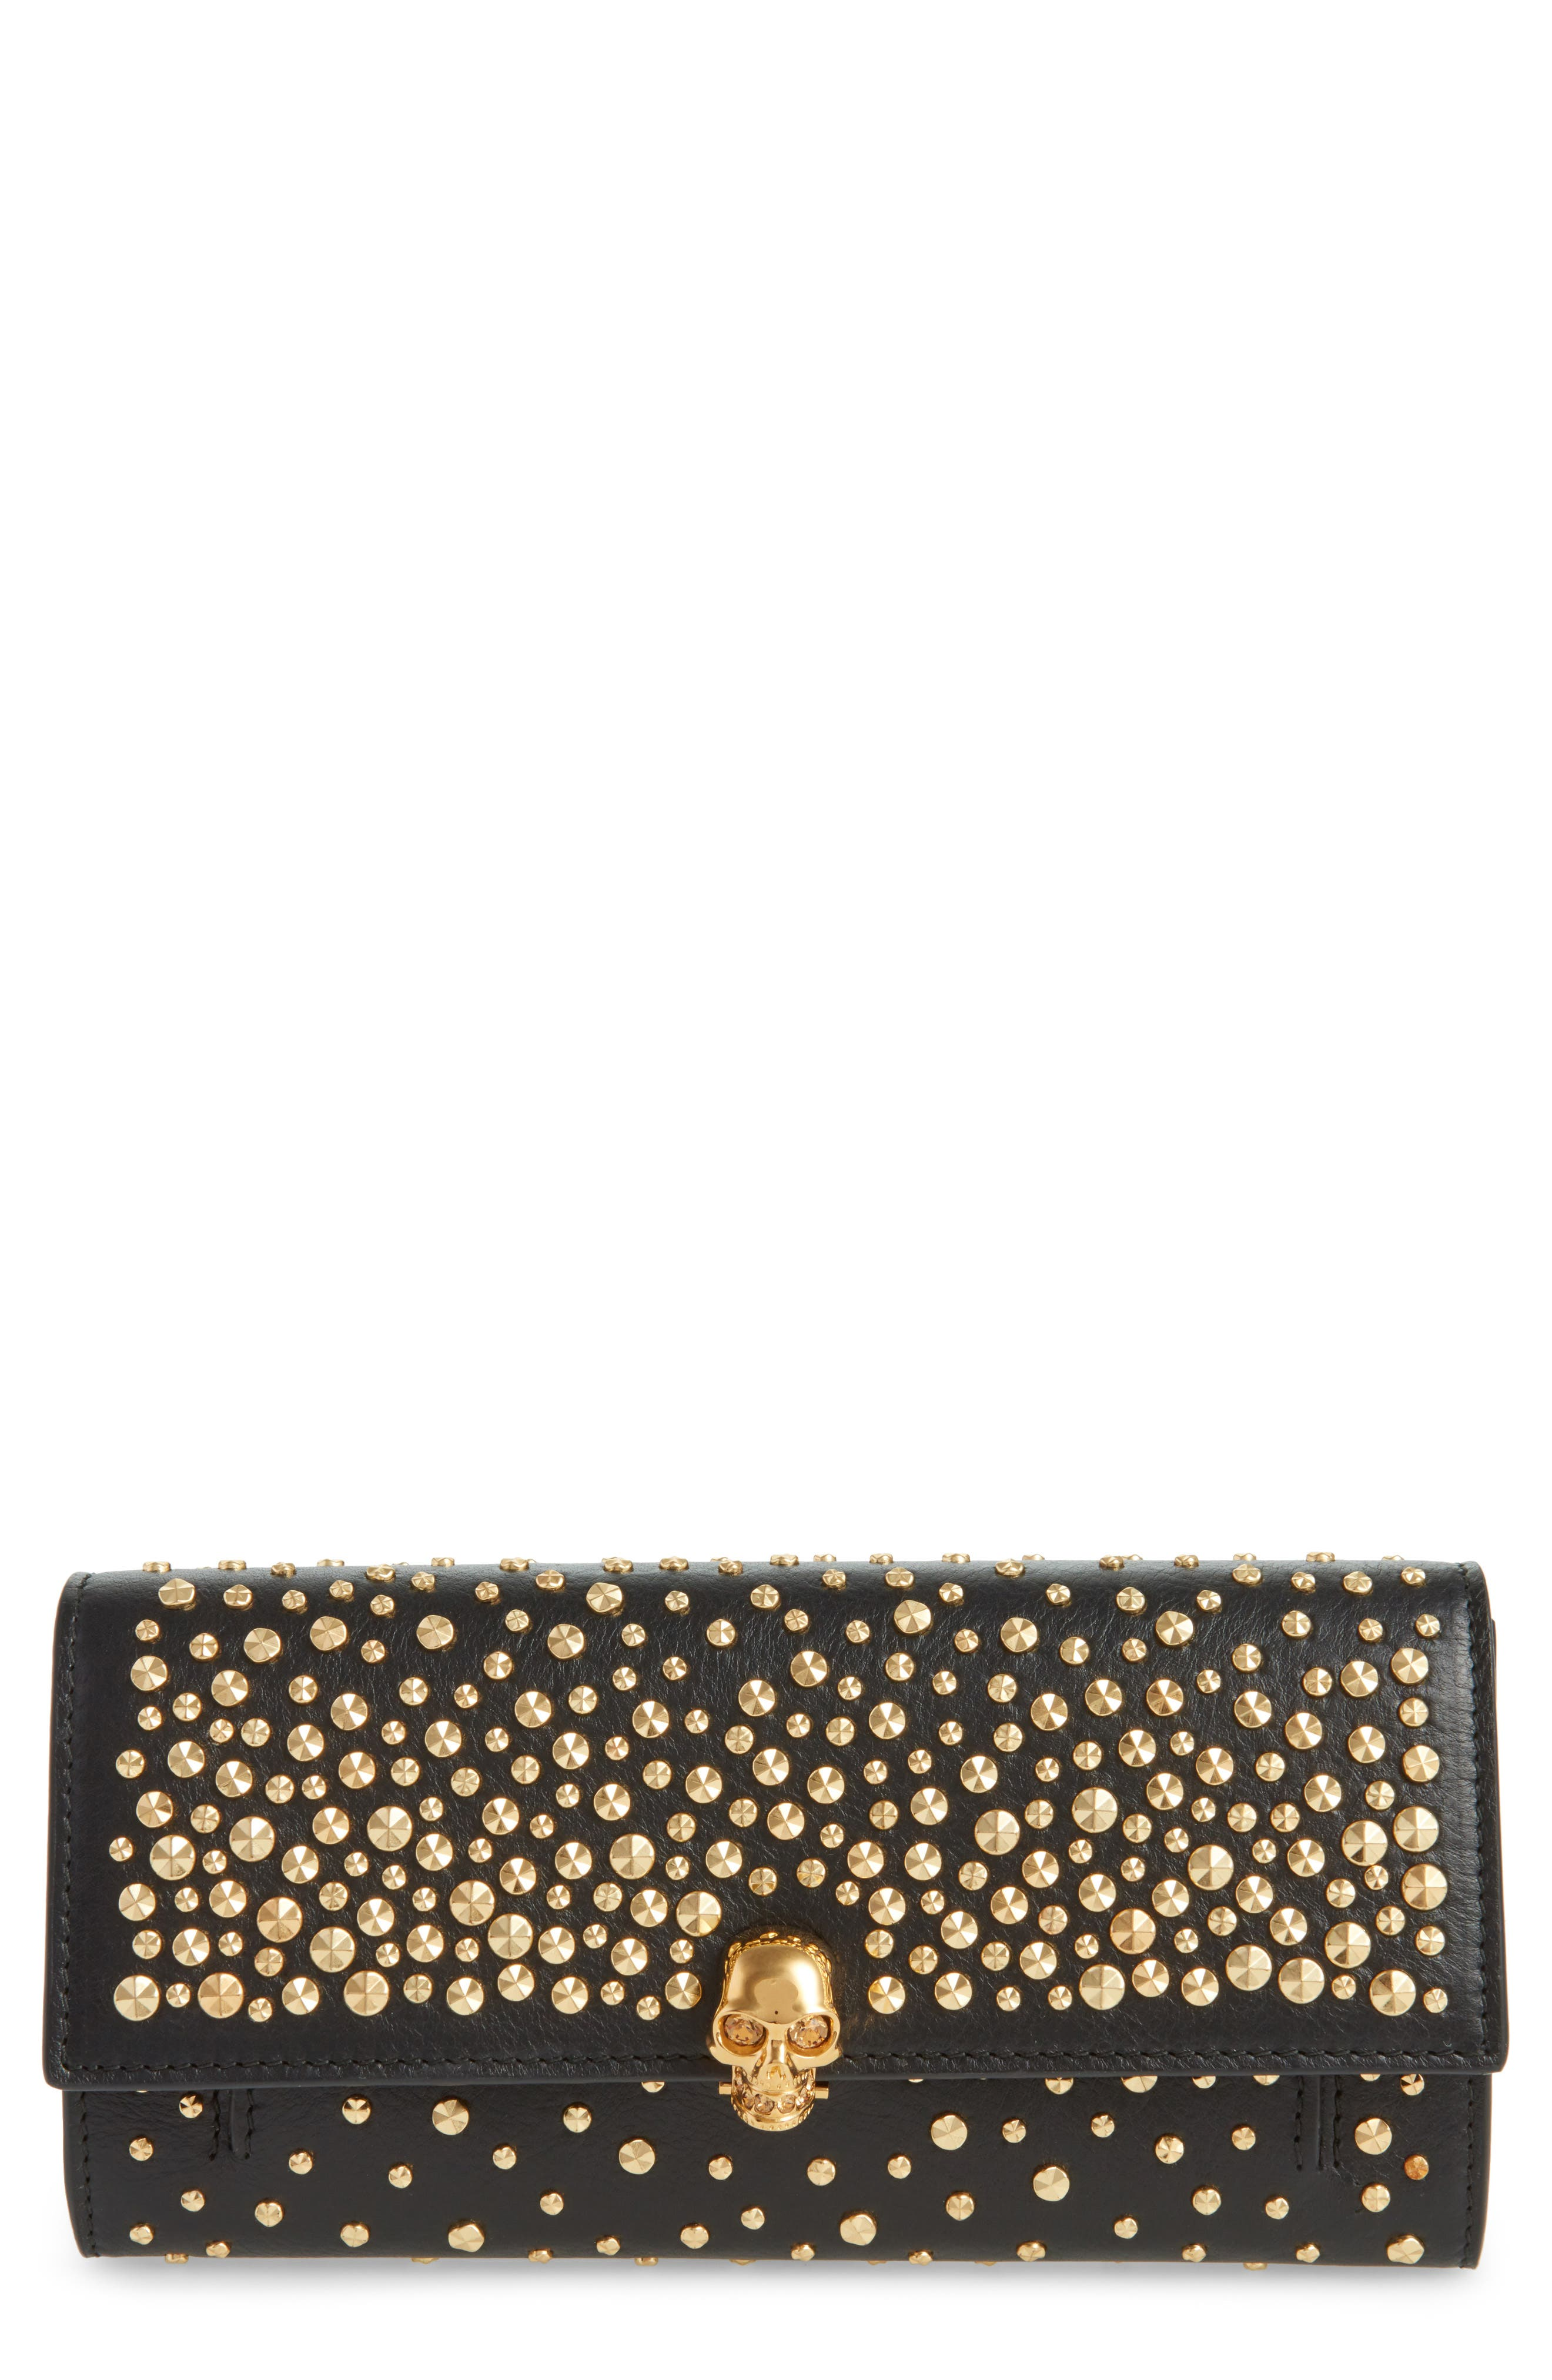 Main Image - Alexander McQueen Studded Skull Leather Wallet on a Chain